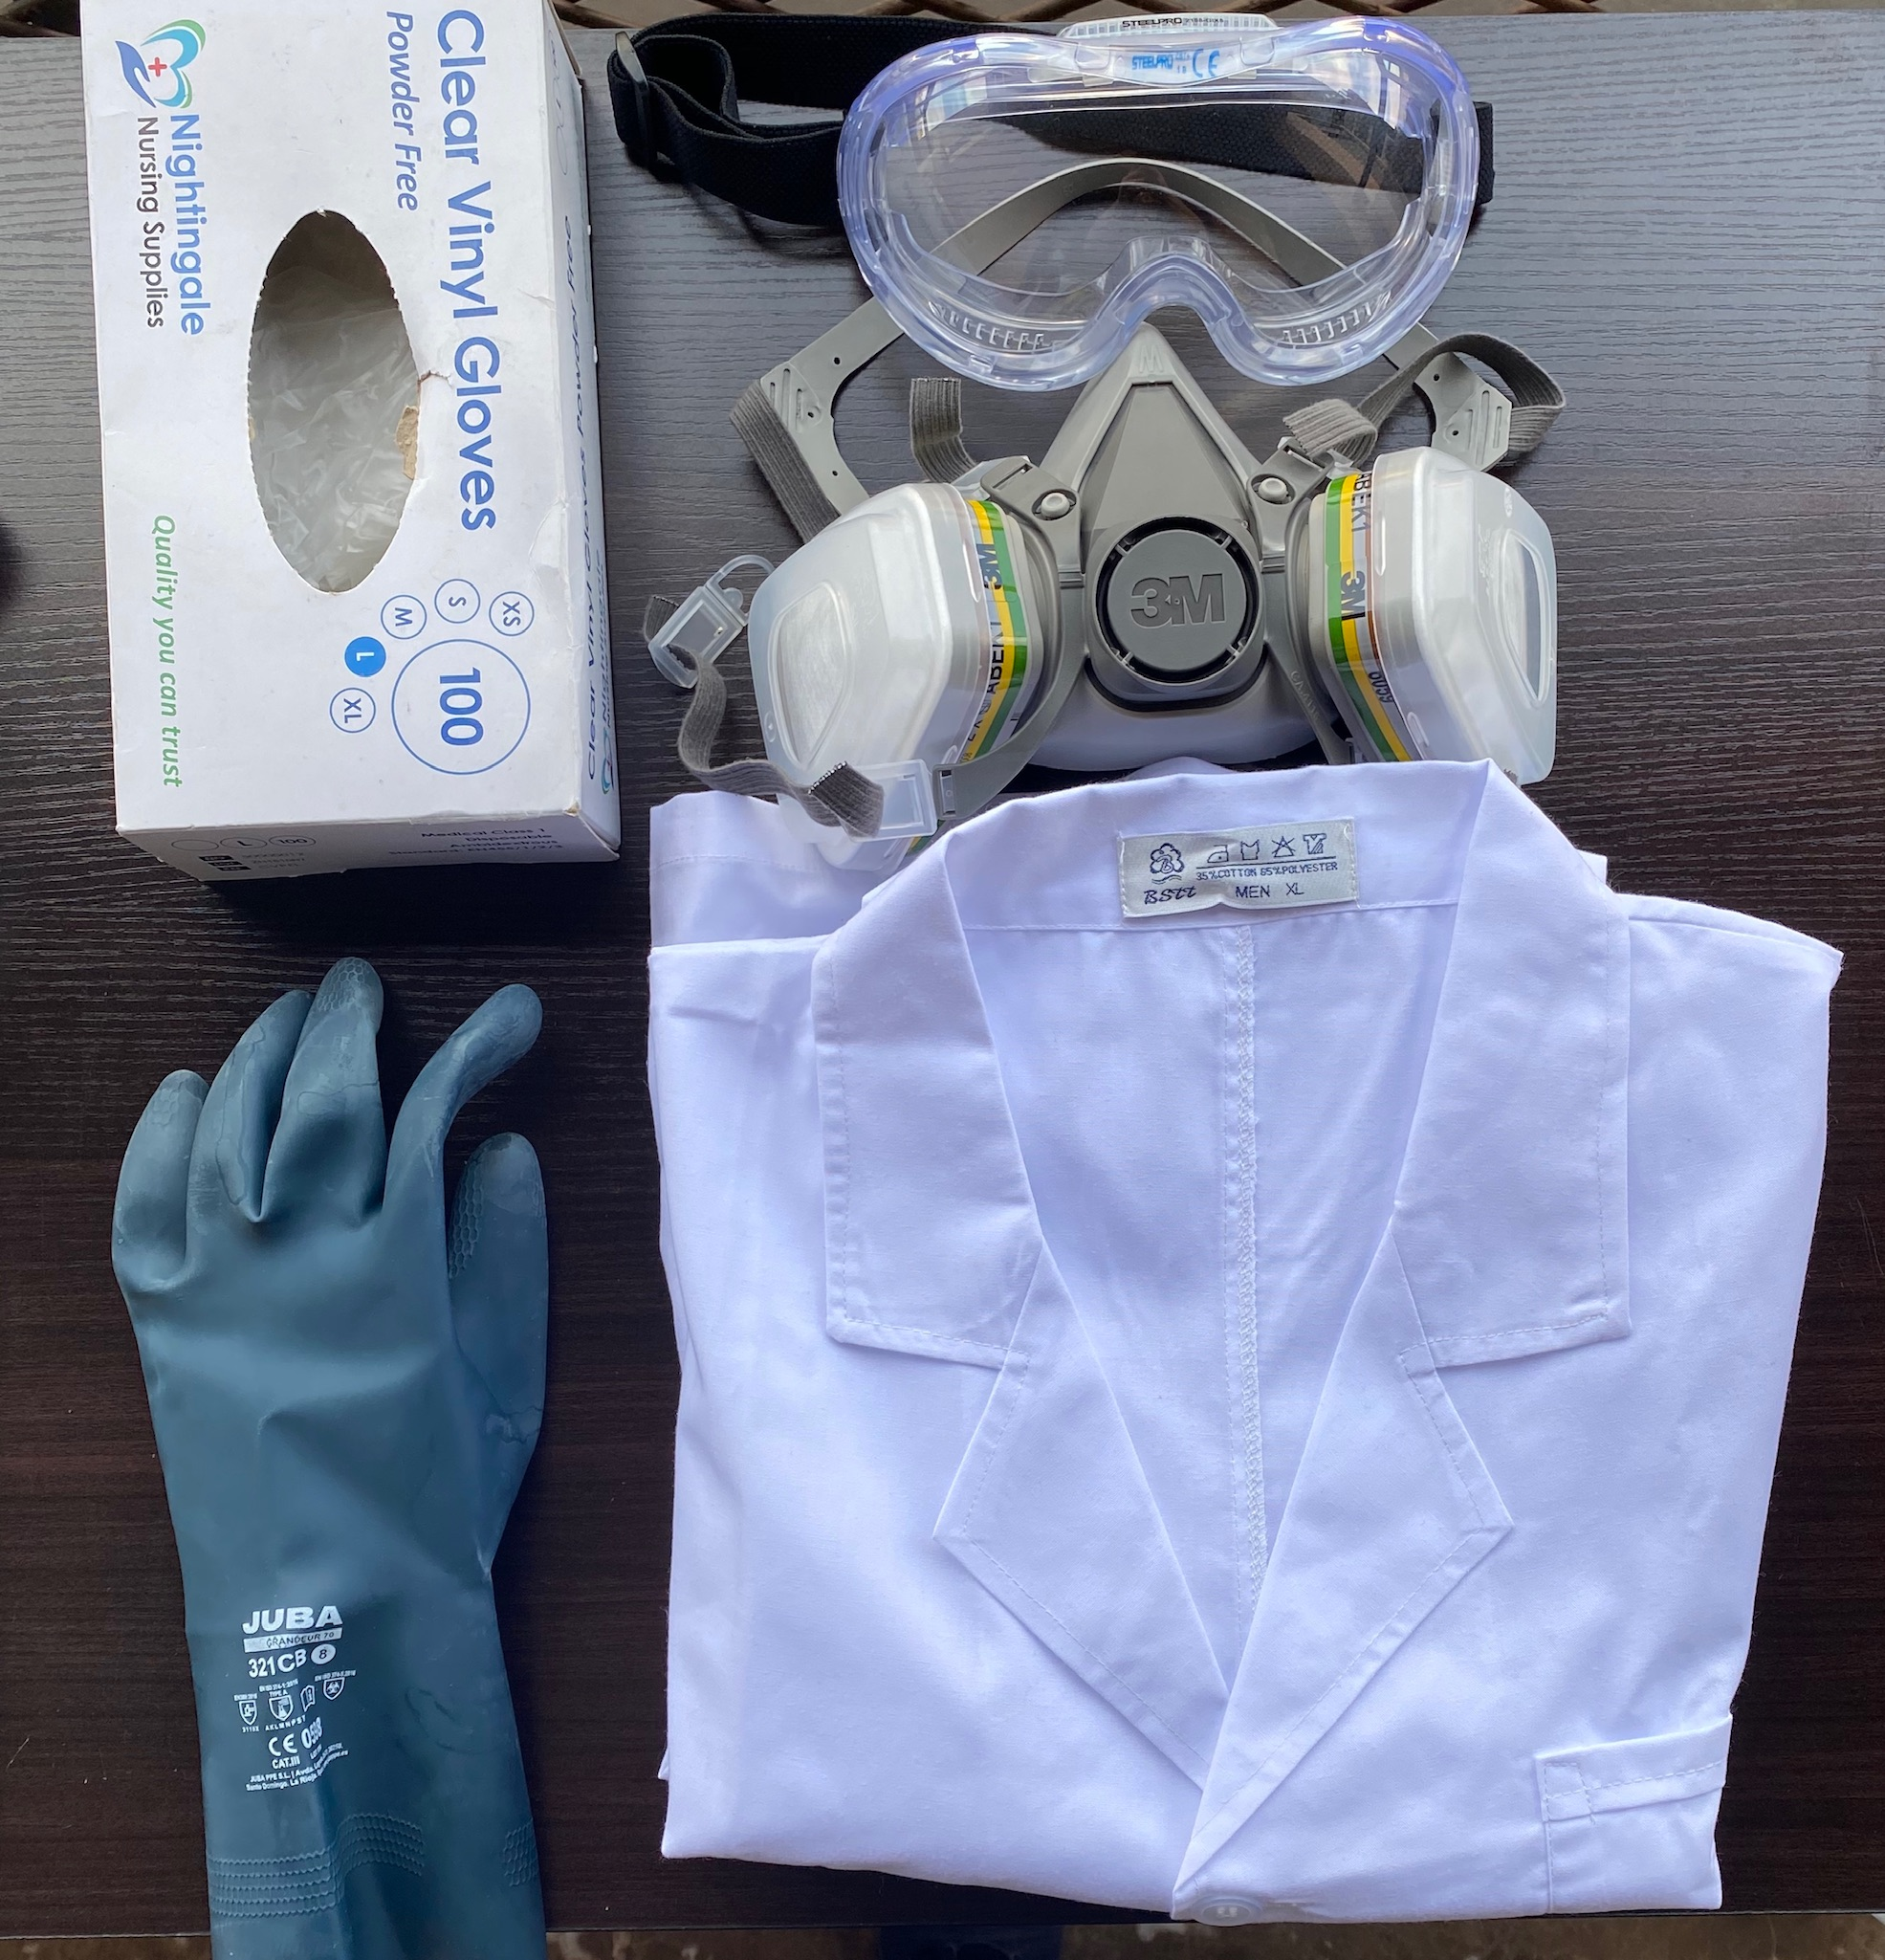 Picture of my PPE